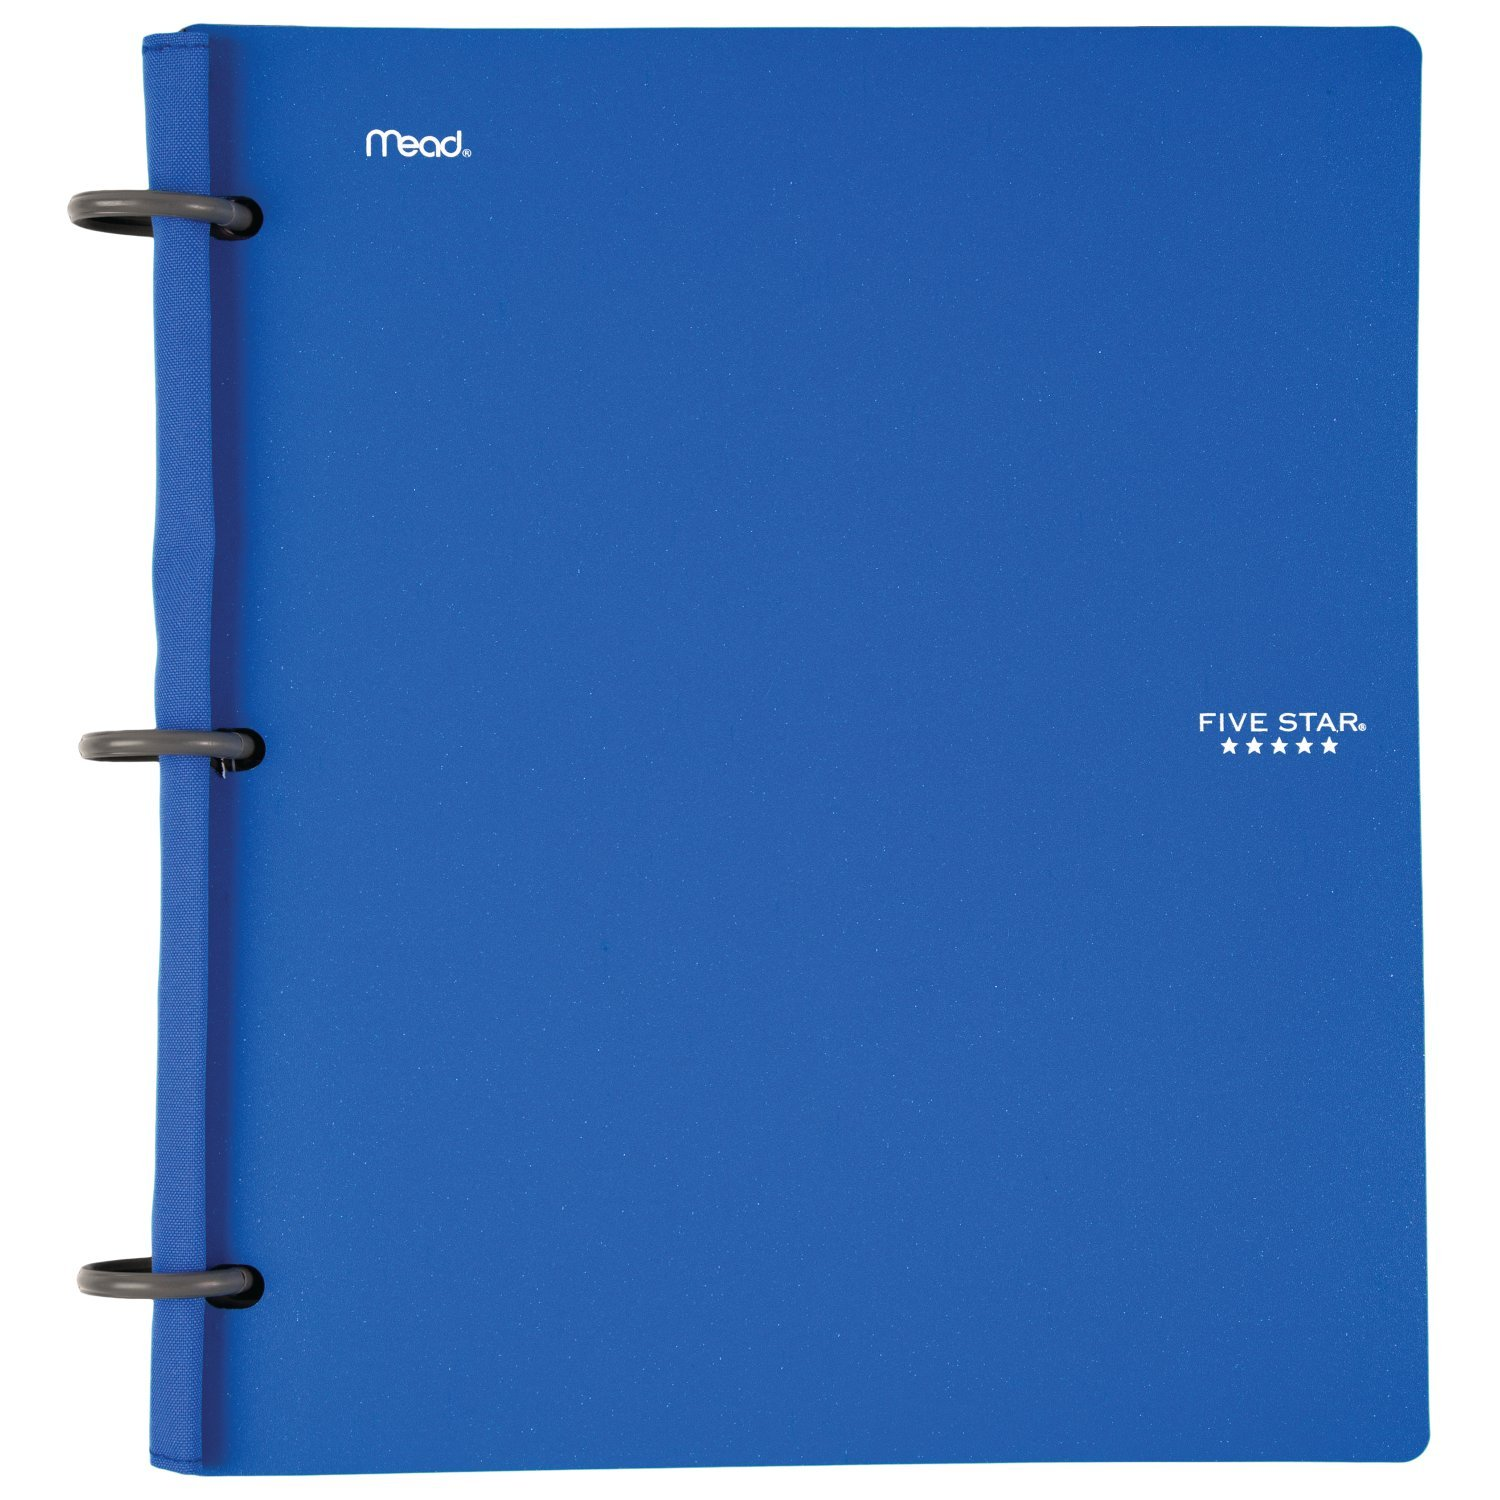 Five Star Flex Hybrid NoteBinder, 1 Inch Binder, Notebook and Binder All-in-One, Blue (72011) by Mead (Image #11)